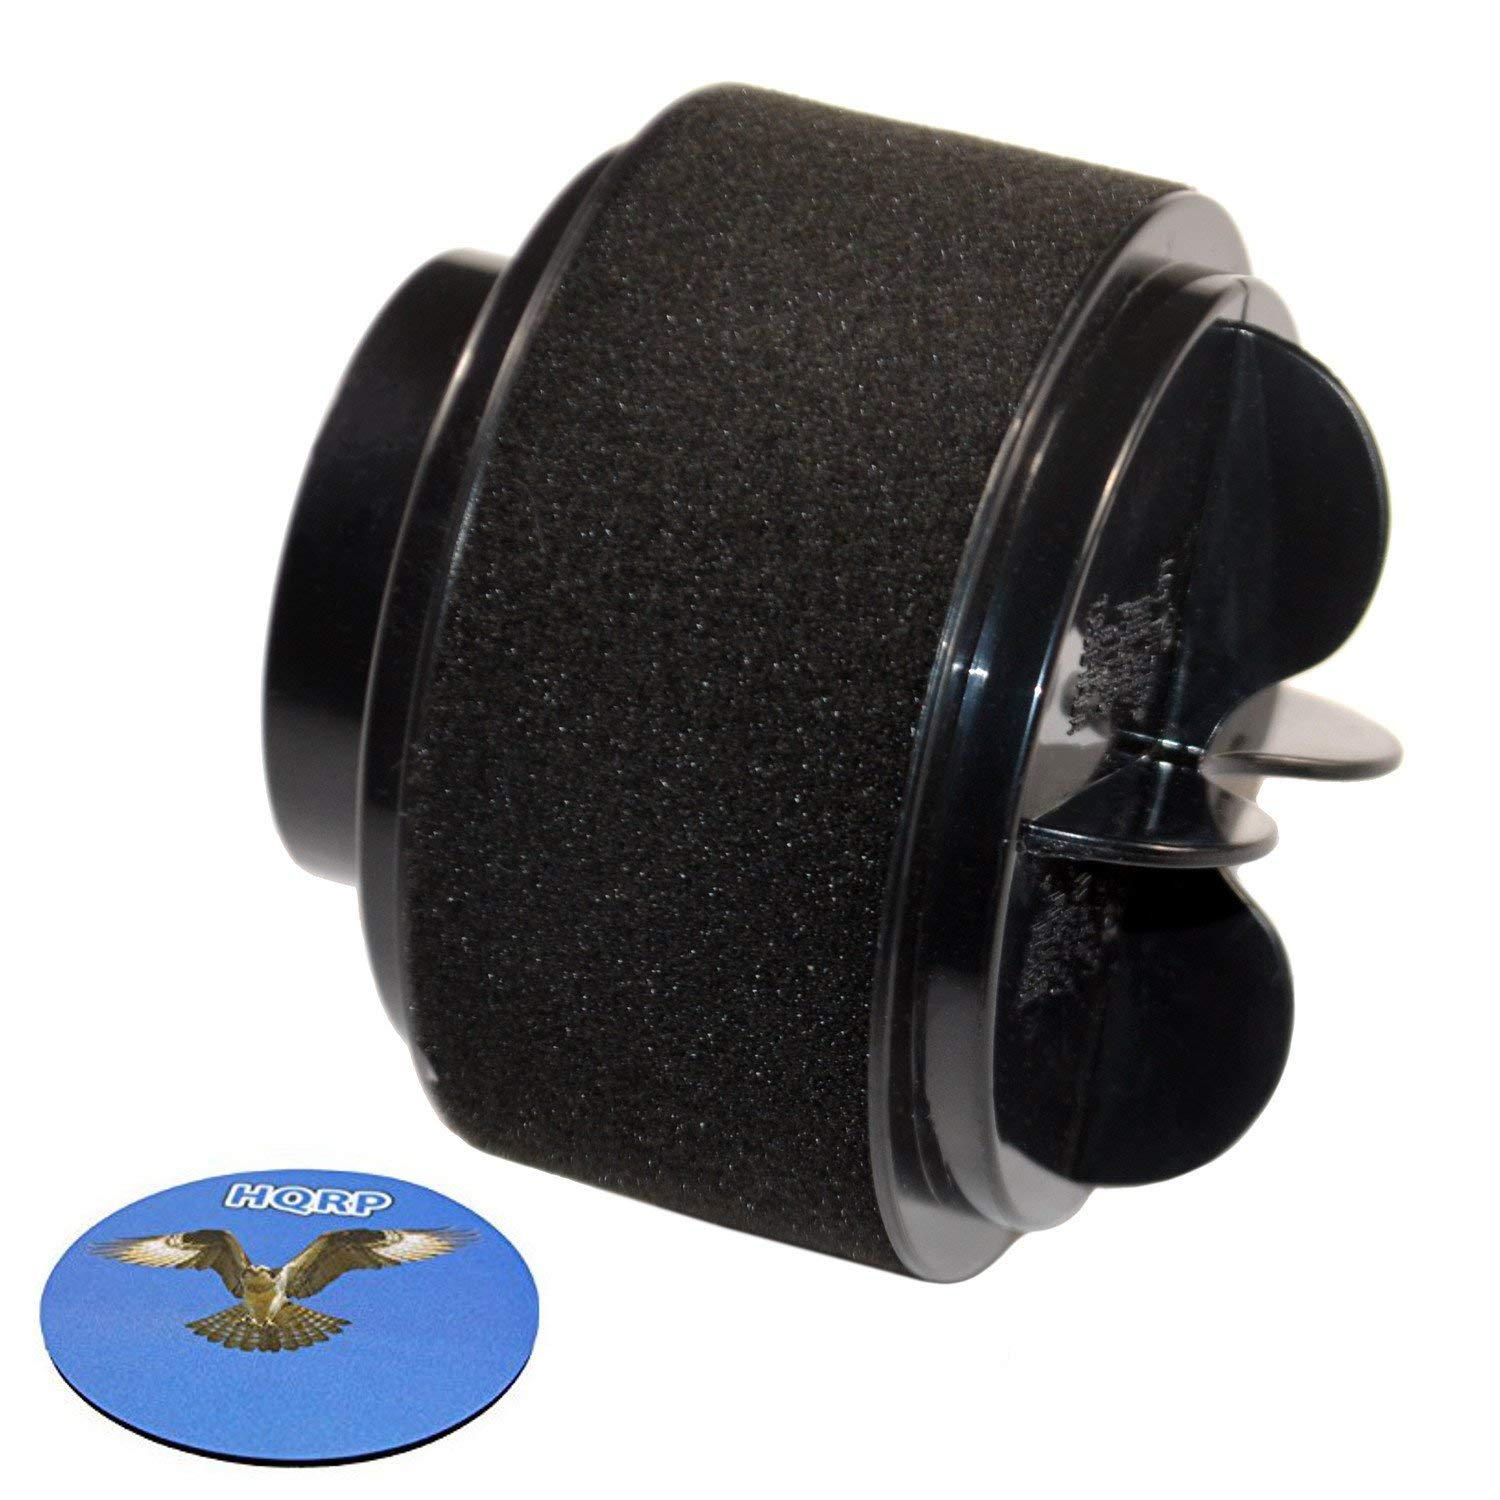 HQRP Inner & Outer Circular Filter Set fits Bissell Easy Vac 31033, 3120, 3120-2, 31202, 31203, 3130, 3130A, 3130B, 31031, 31032 Vacuum Cleaner